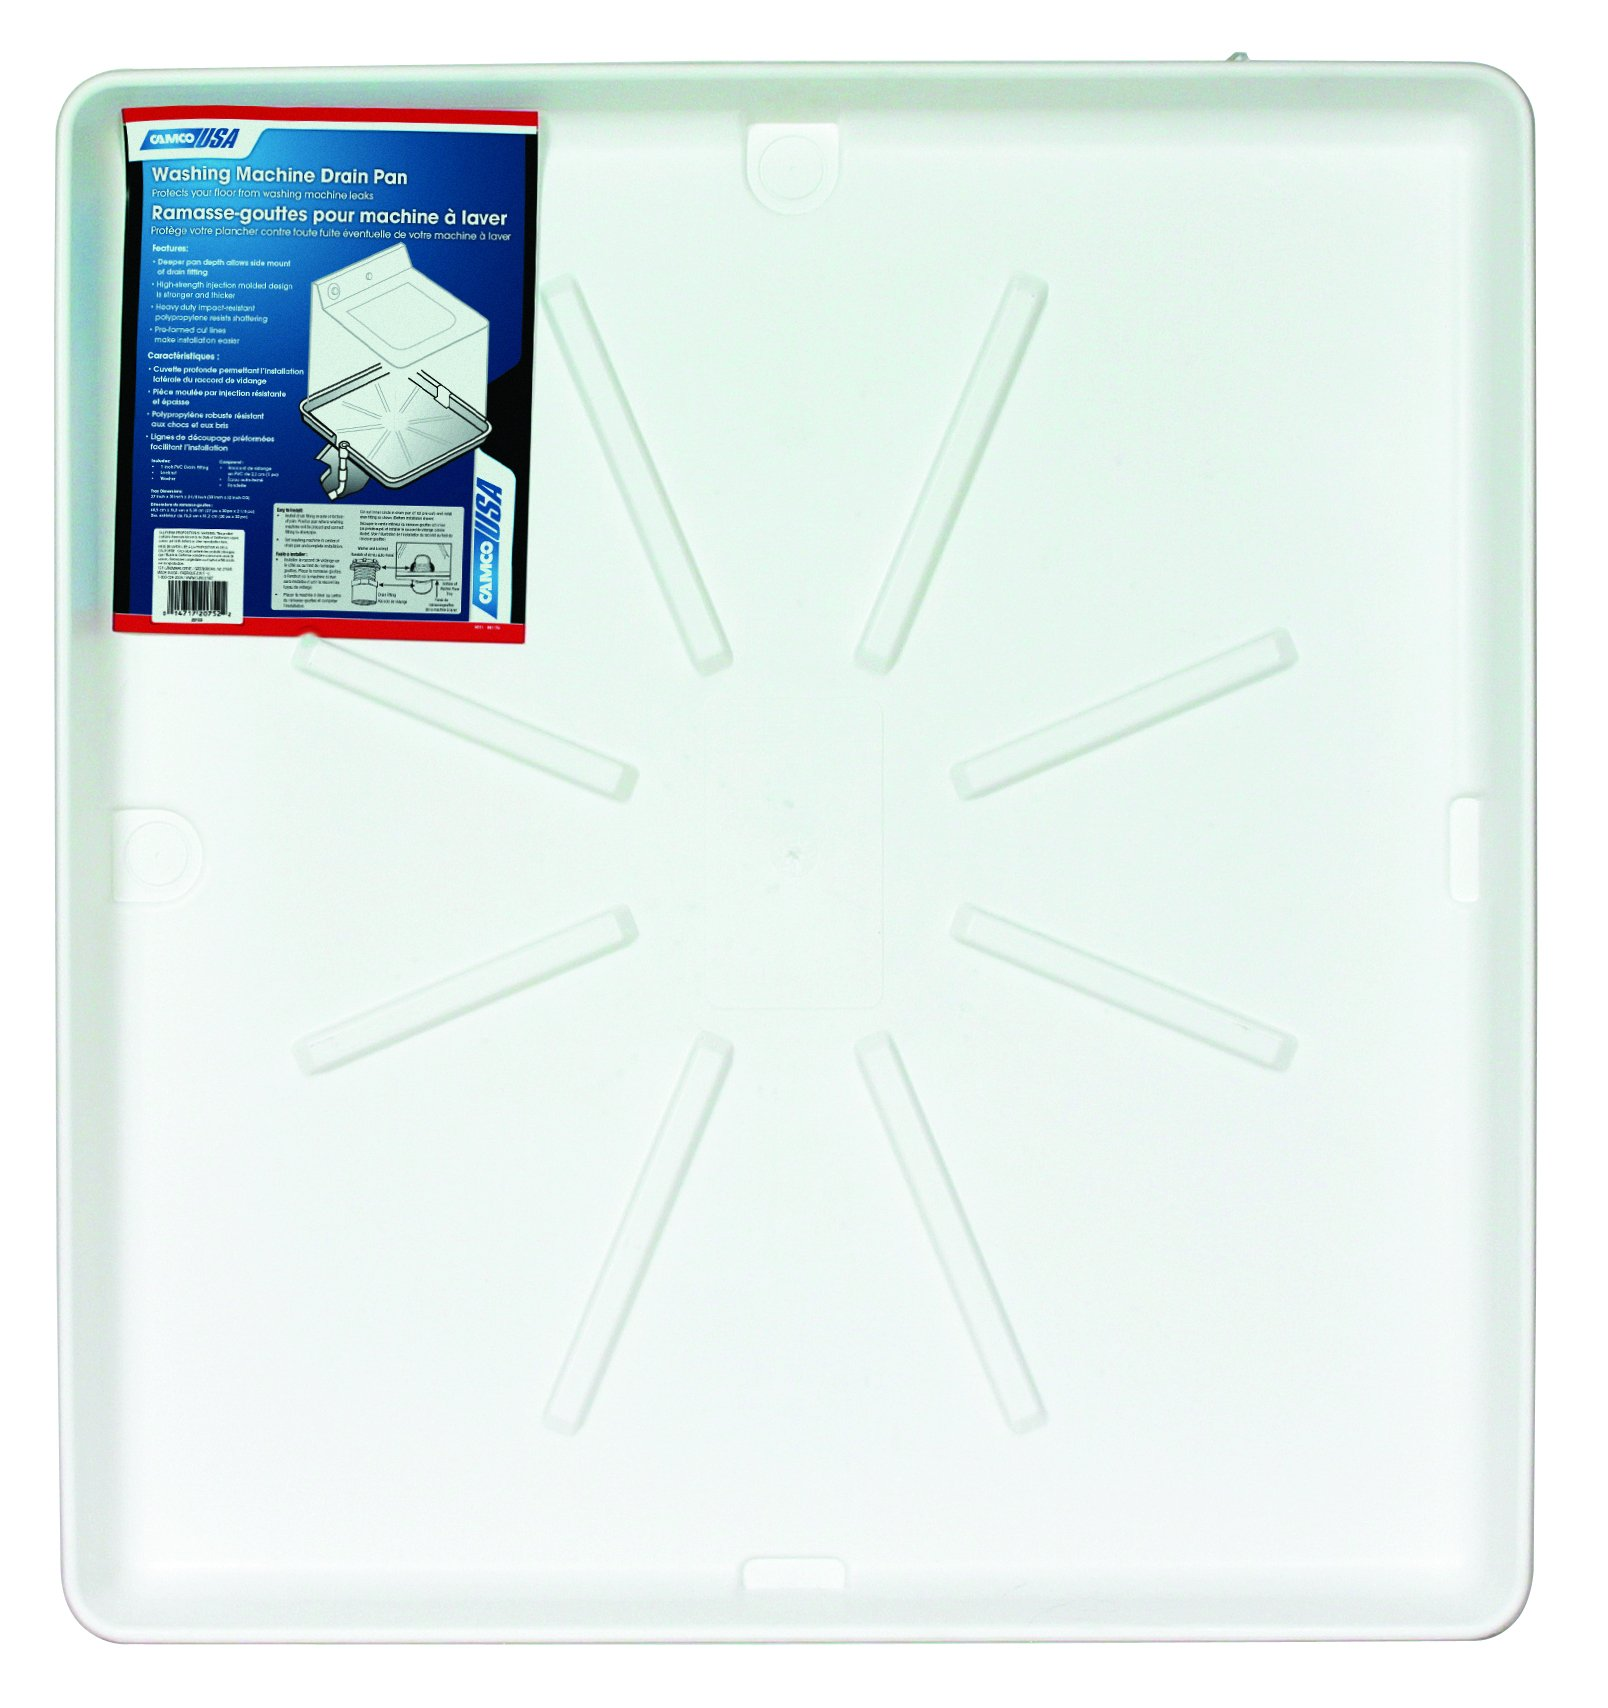 "Camco 20751 32"" x 30"" Washing Machine Drain Pan with PVC Fitting - Protect Your Floor From Washing Machine Leaks, White"